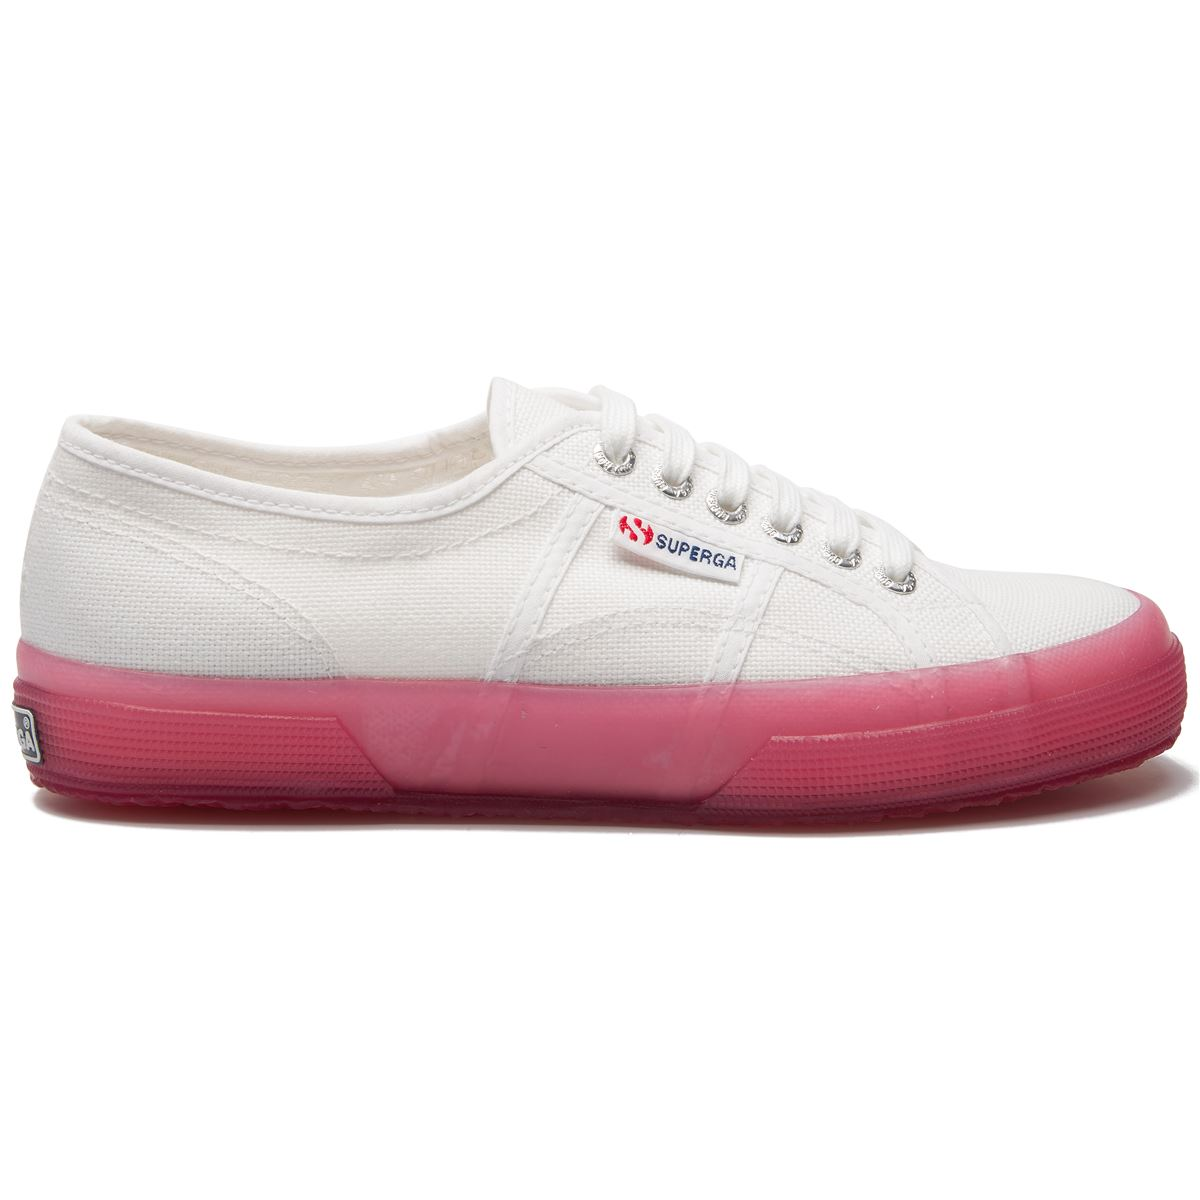 Italian Le Superga Superga for men and women-S1113DW